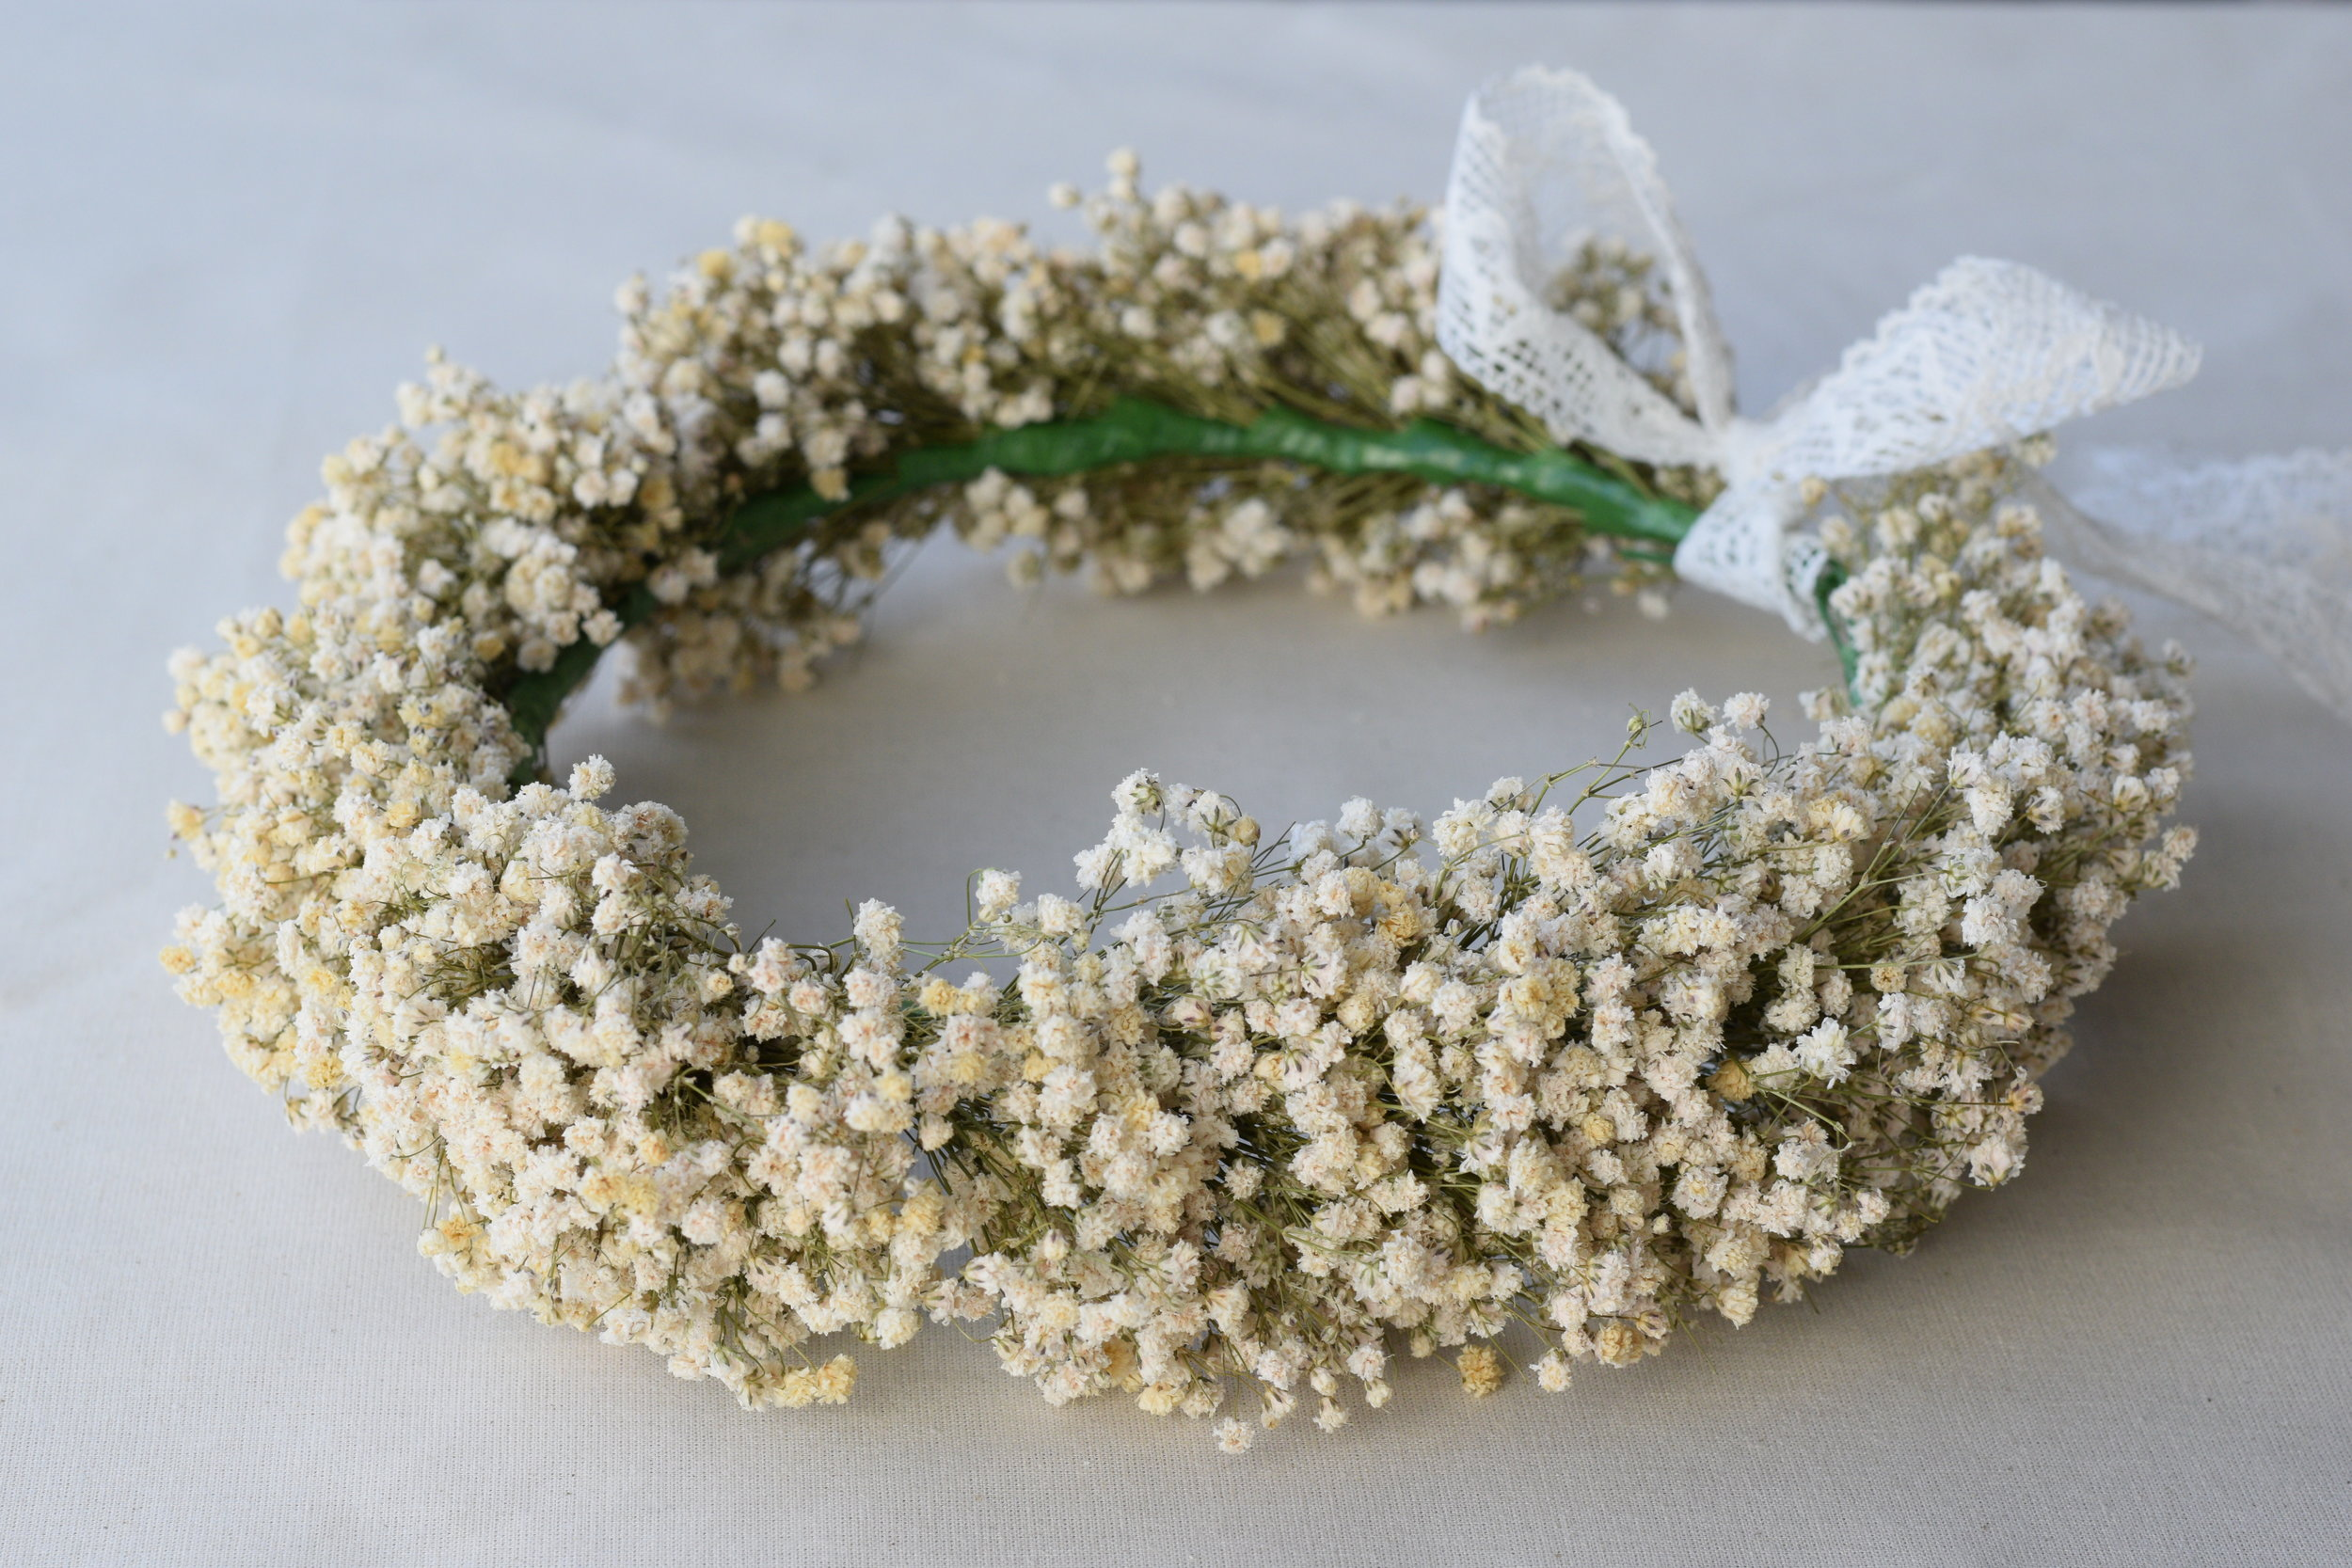 Floral Crowns - Floral crowns for Brides, Bridesmaids, Festival lovers or for those of us that love a bit of floral with their everyday style!